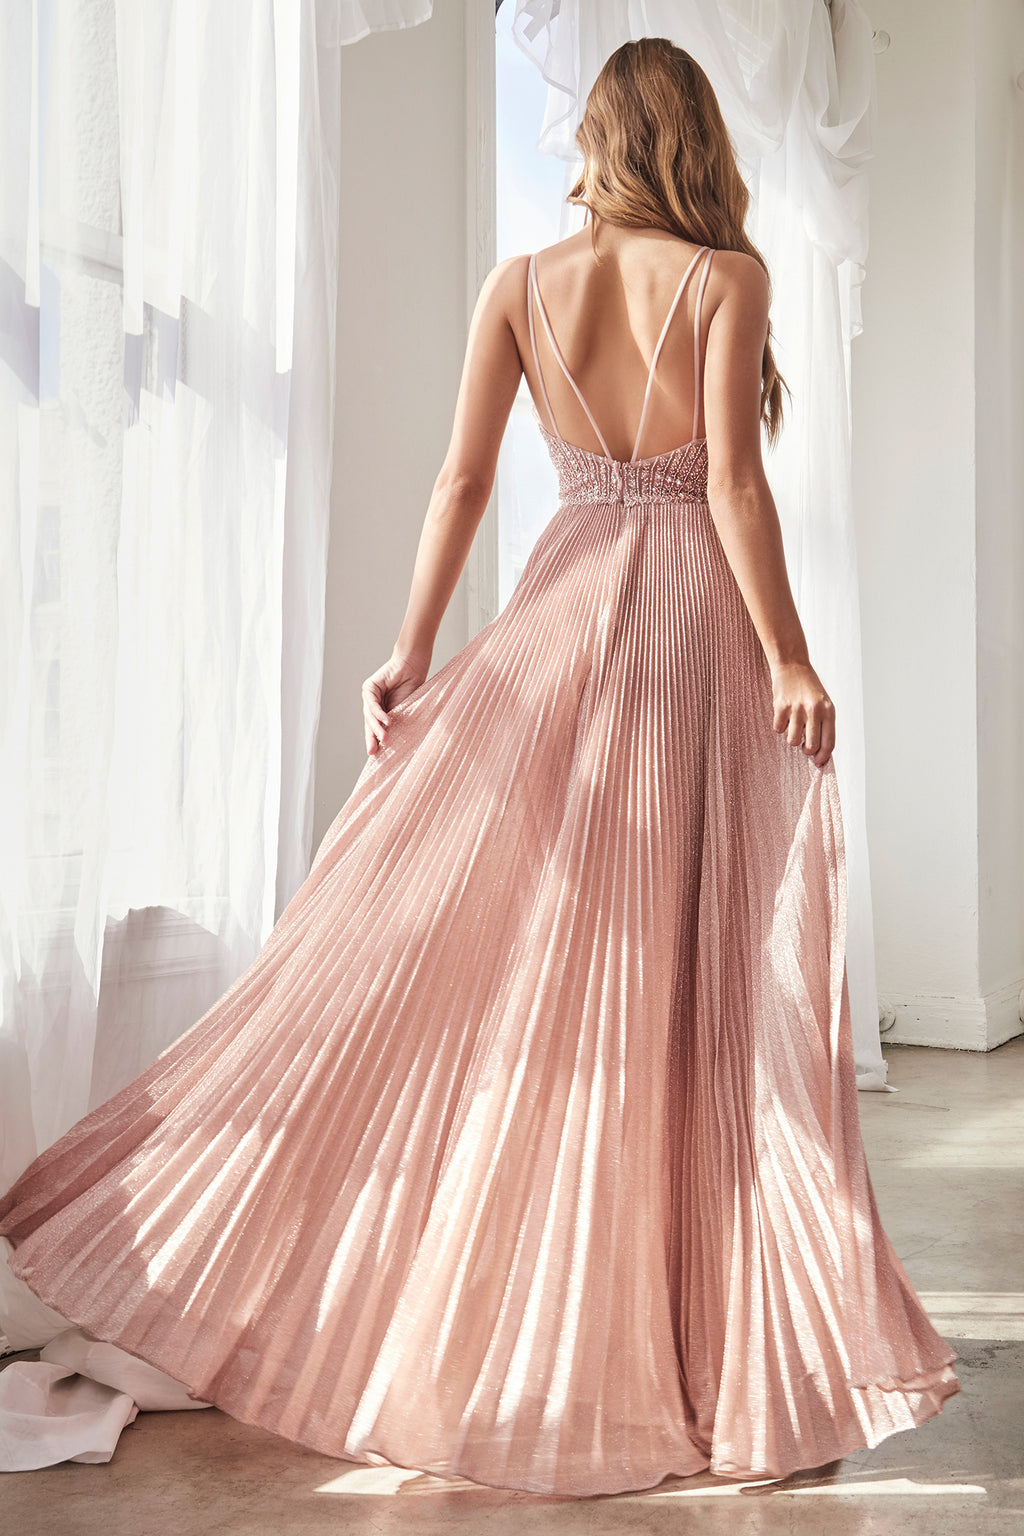 ELLIE GOWN - DUSTY ROSE | CD0162